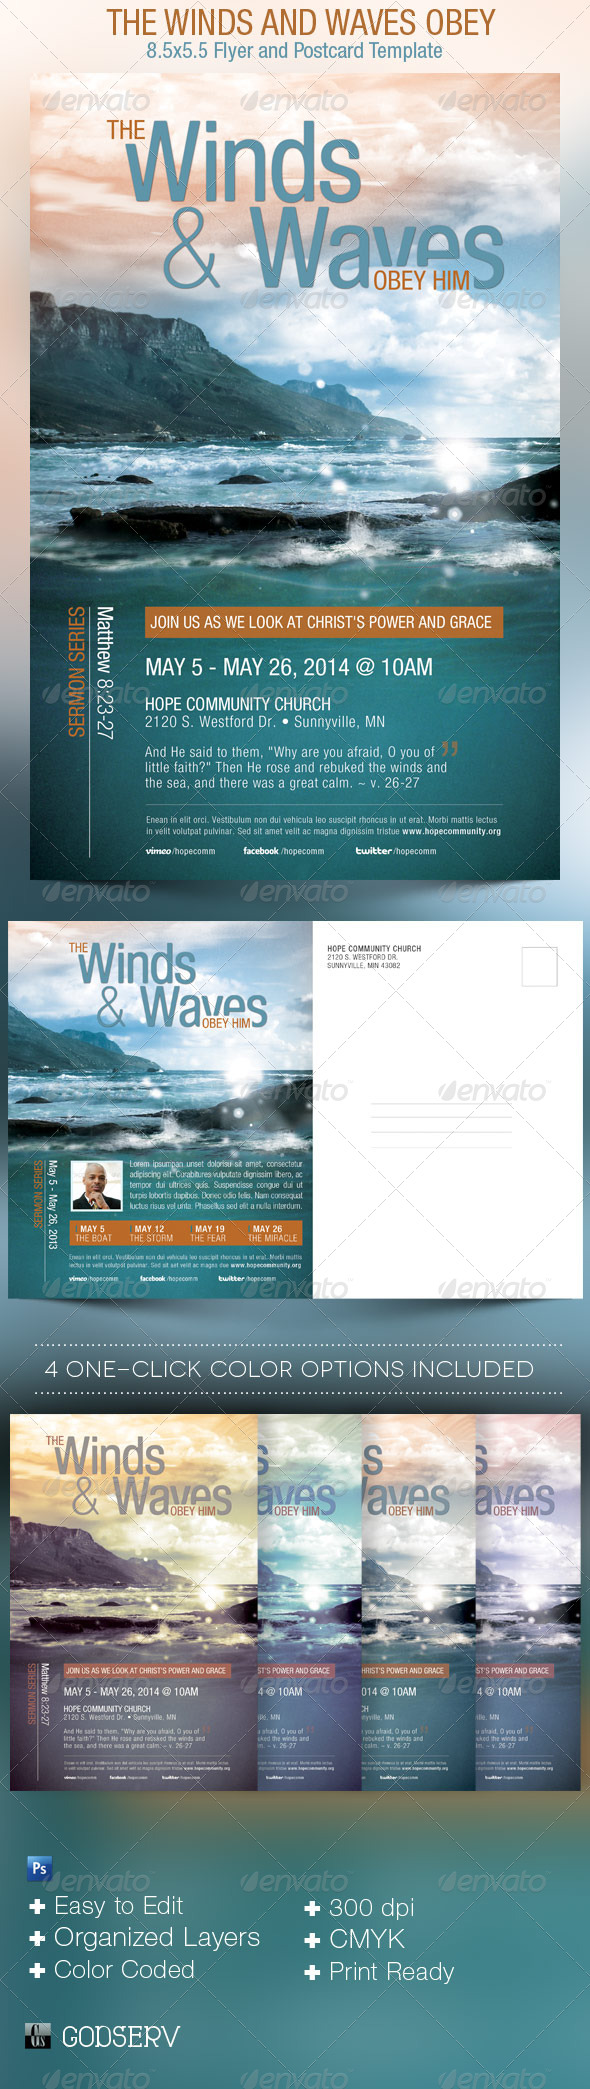 Winds and Waves Obey Him Church Flyer Template - Church Flyers